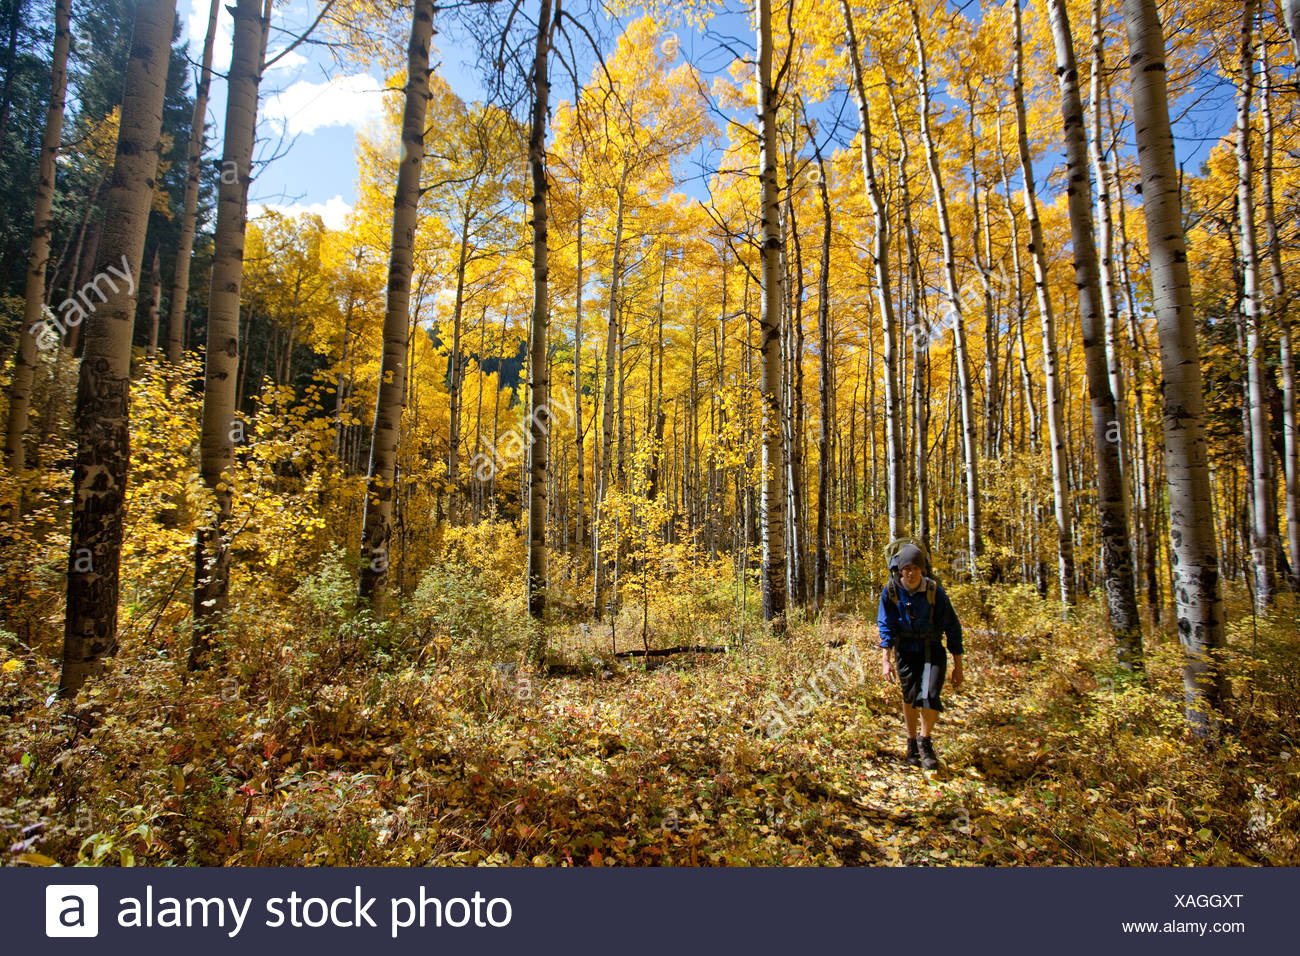 A male hikes through glowing Aspen trees on a sunny fall day in Colorado. - Stock Image